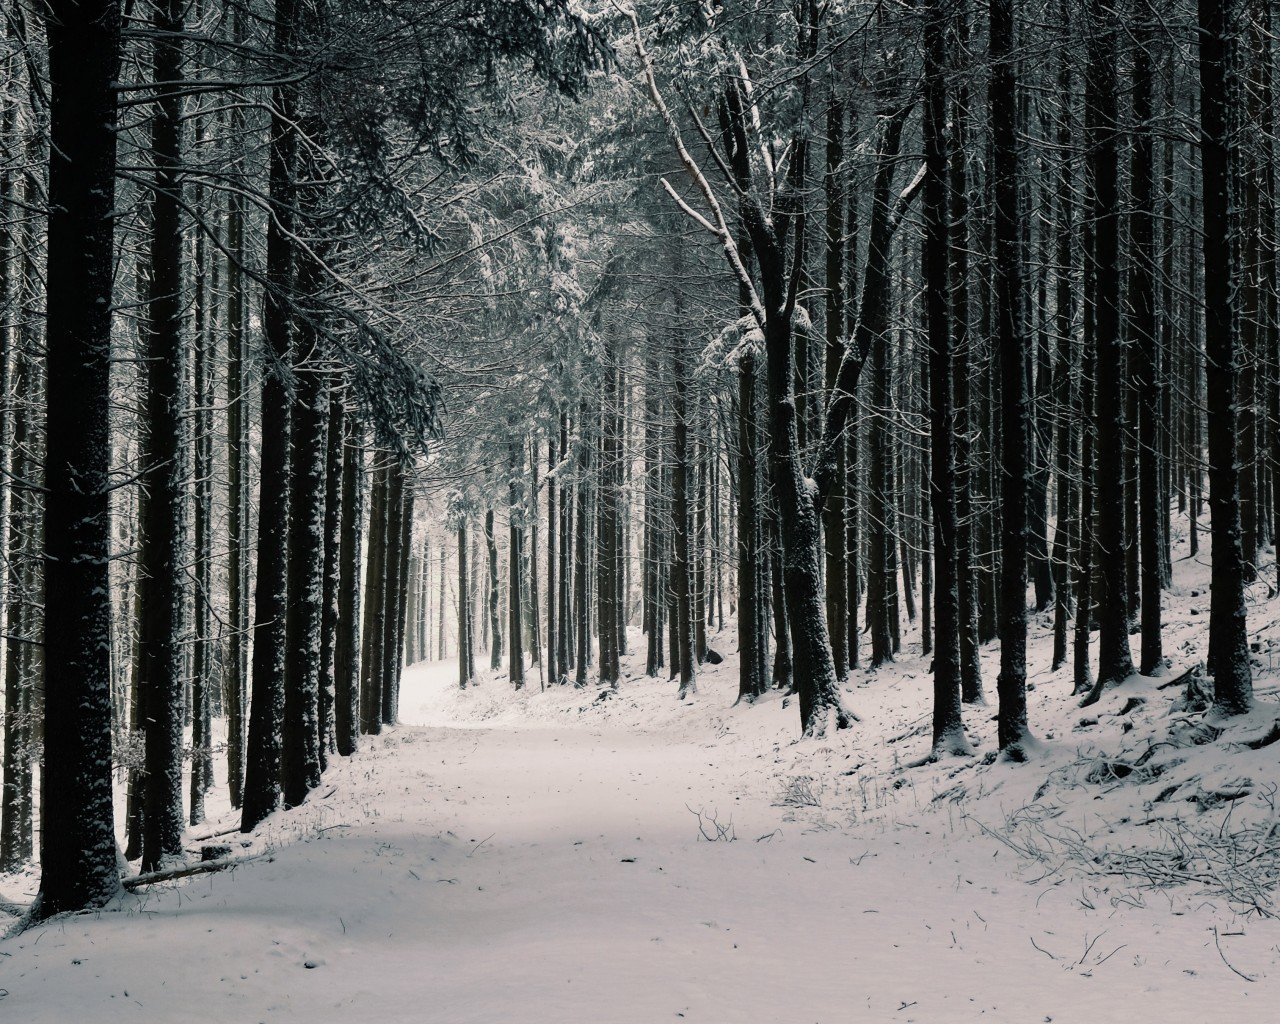 Winter, Forest, Snow, Path, Trees - Iphone Winter Backgrounds Pine Trees - HD Wallpaper